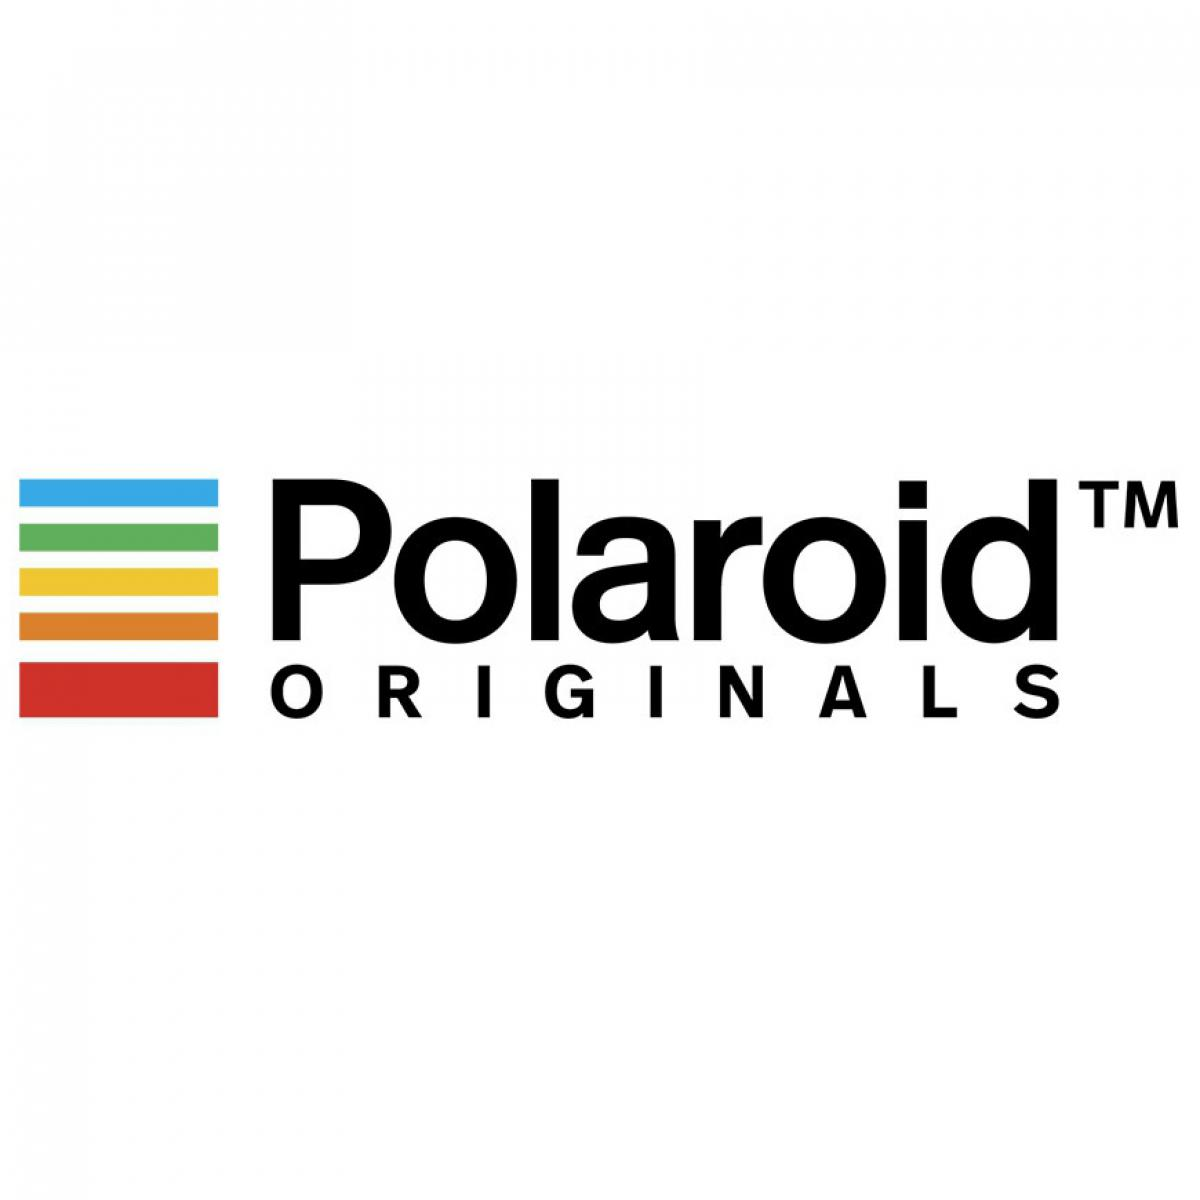 Colonia Nova - Polaroid Originals - Product Presentation